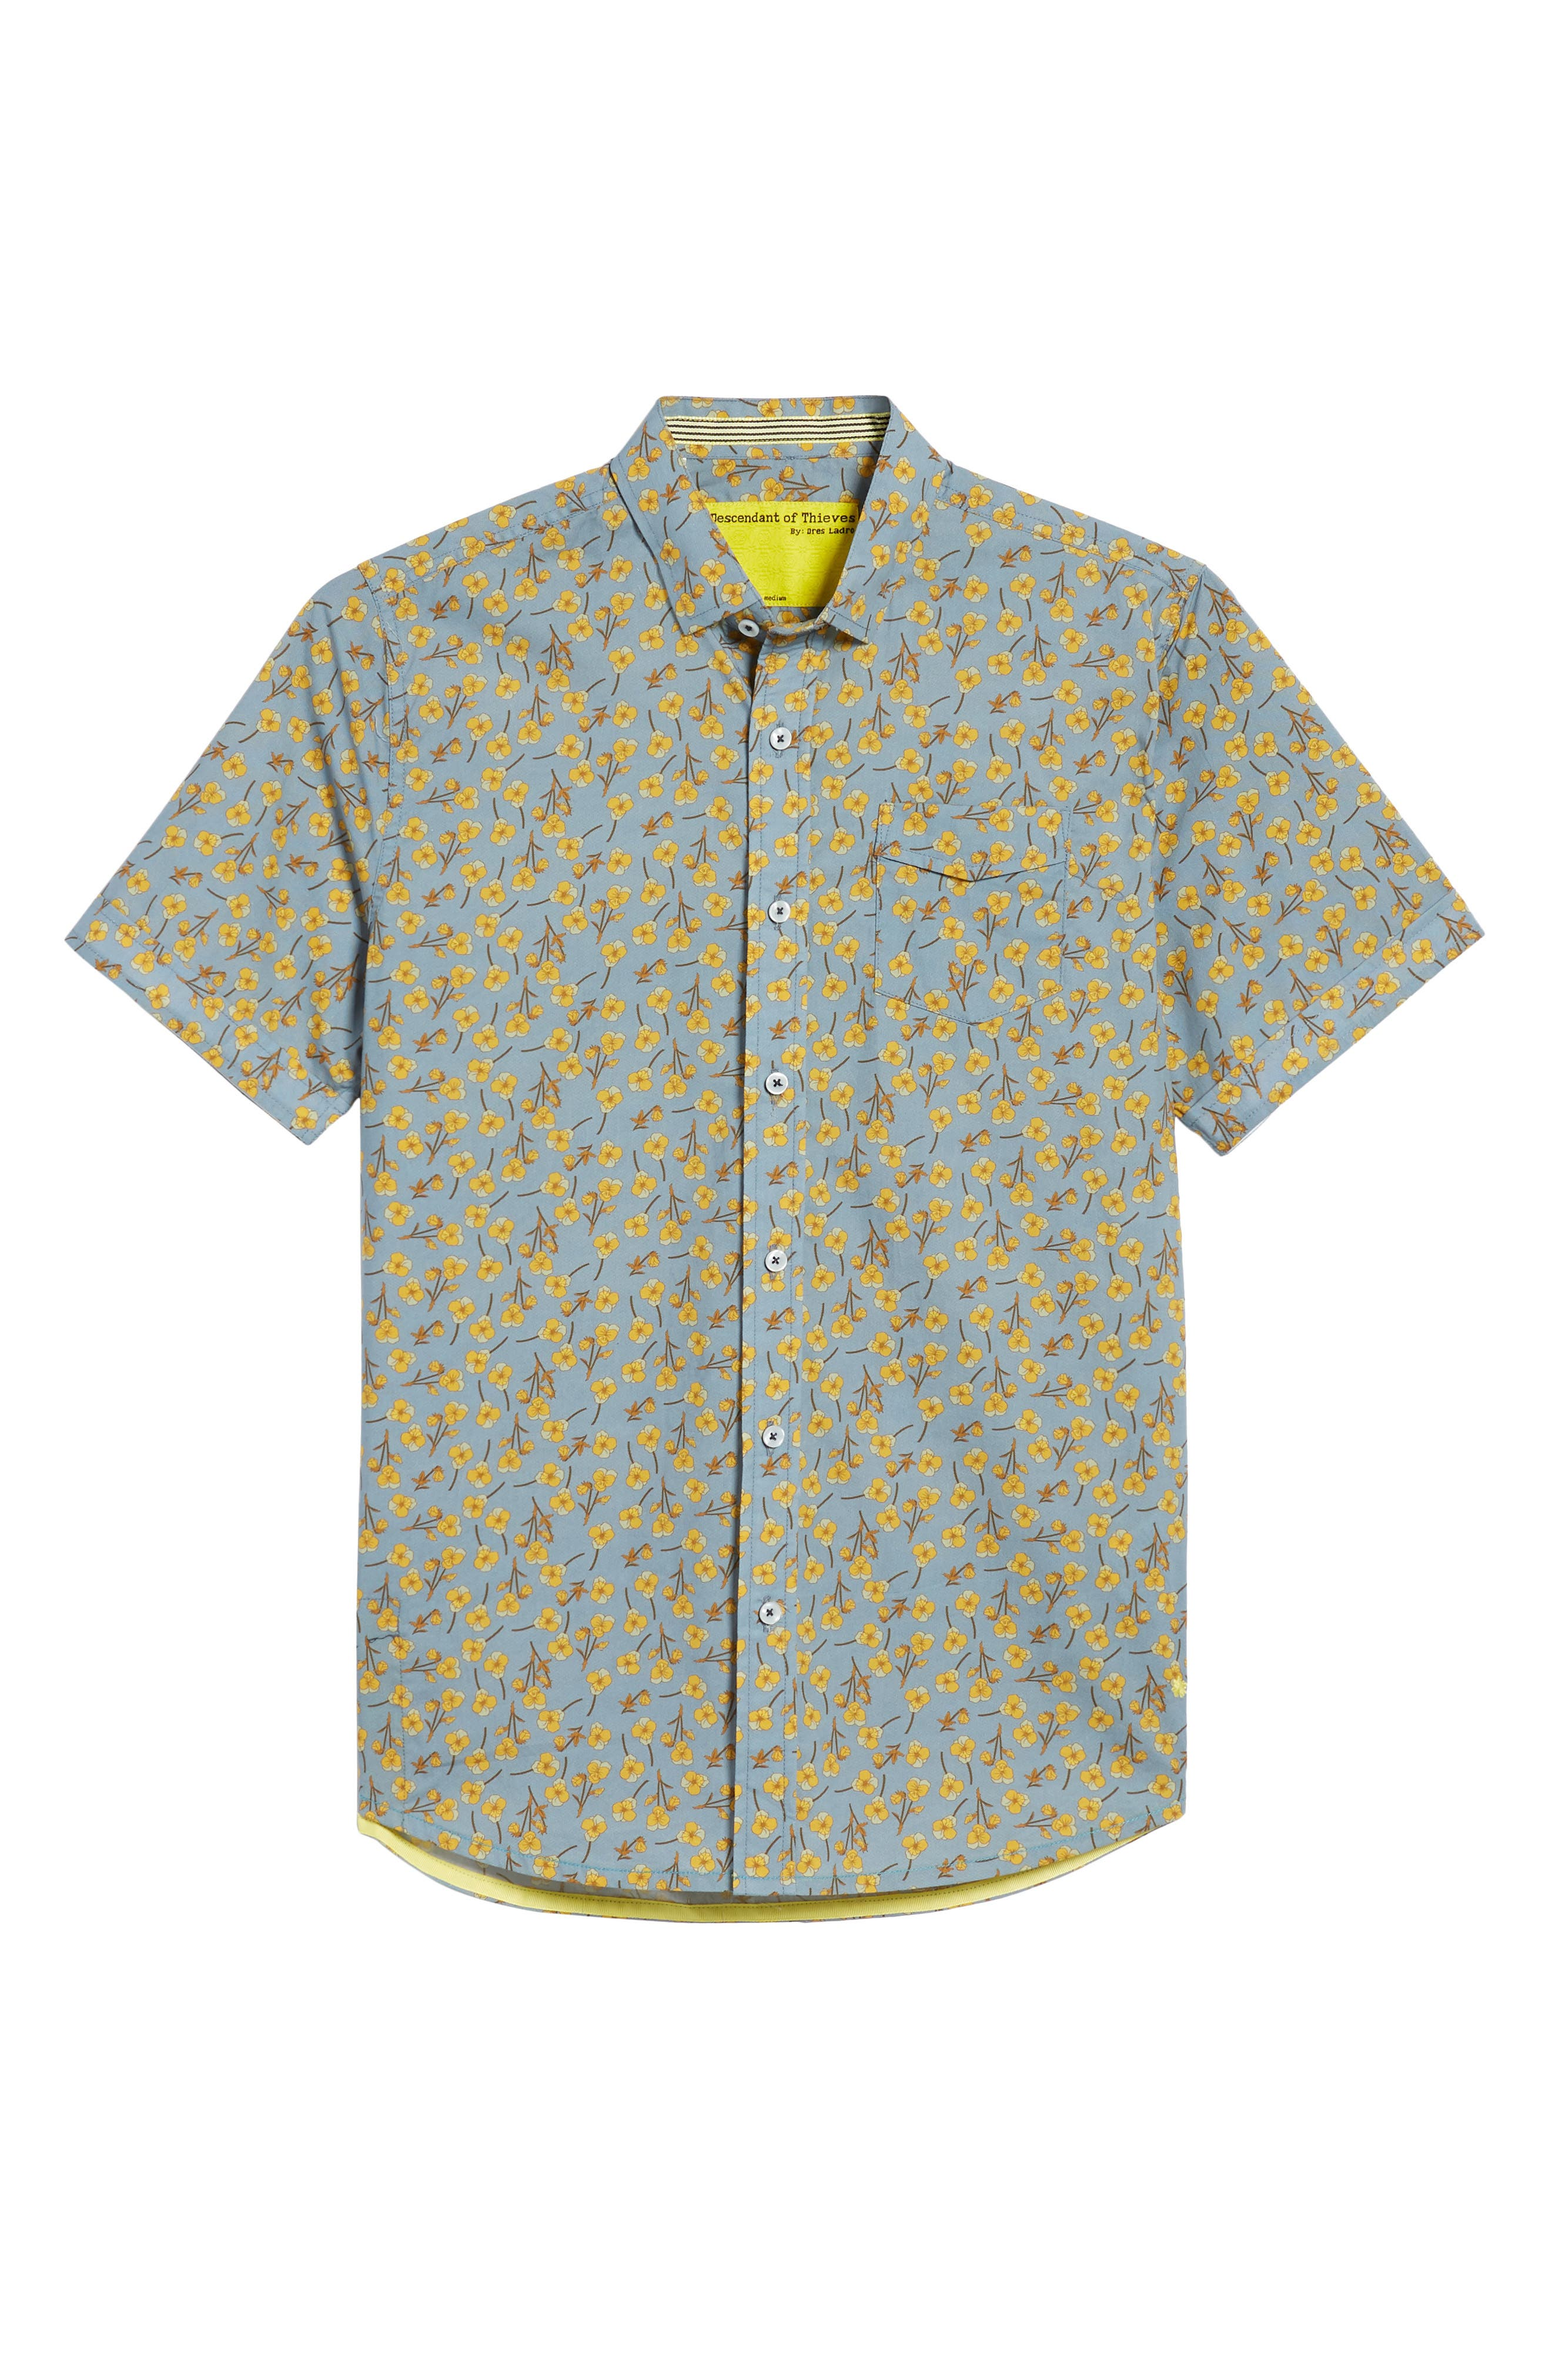 Golden Flower Shirt,                             Alternate thumbnail 6, color,                             400